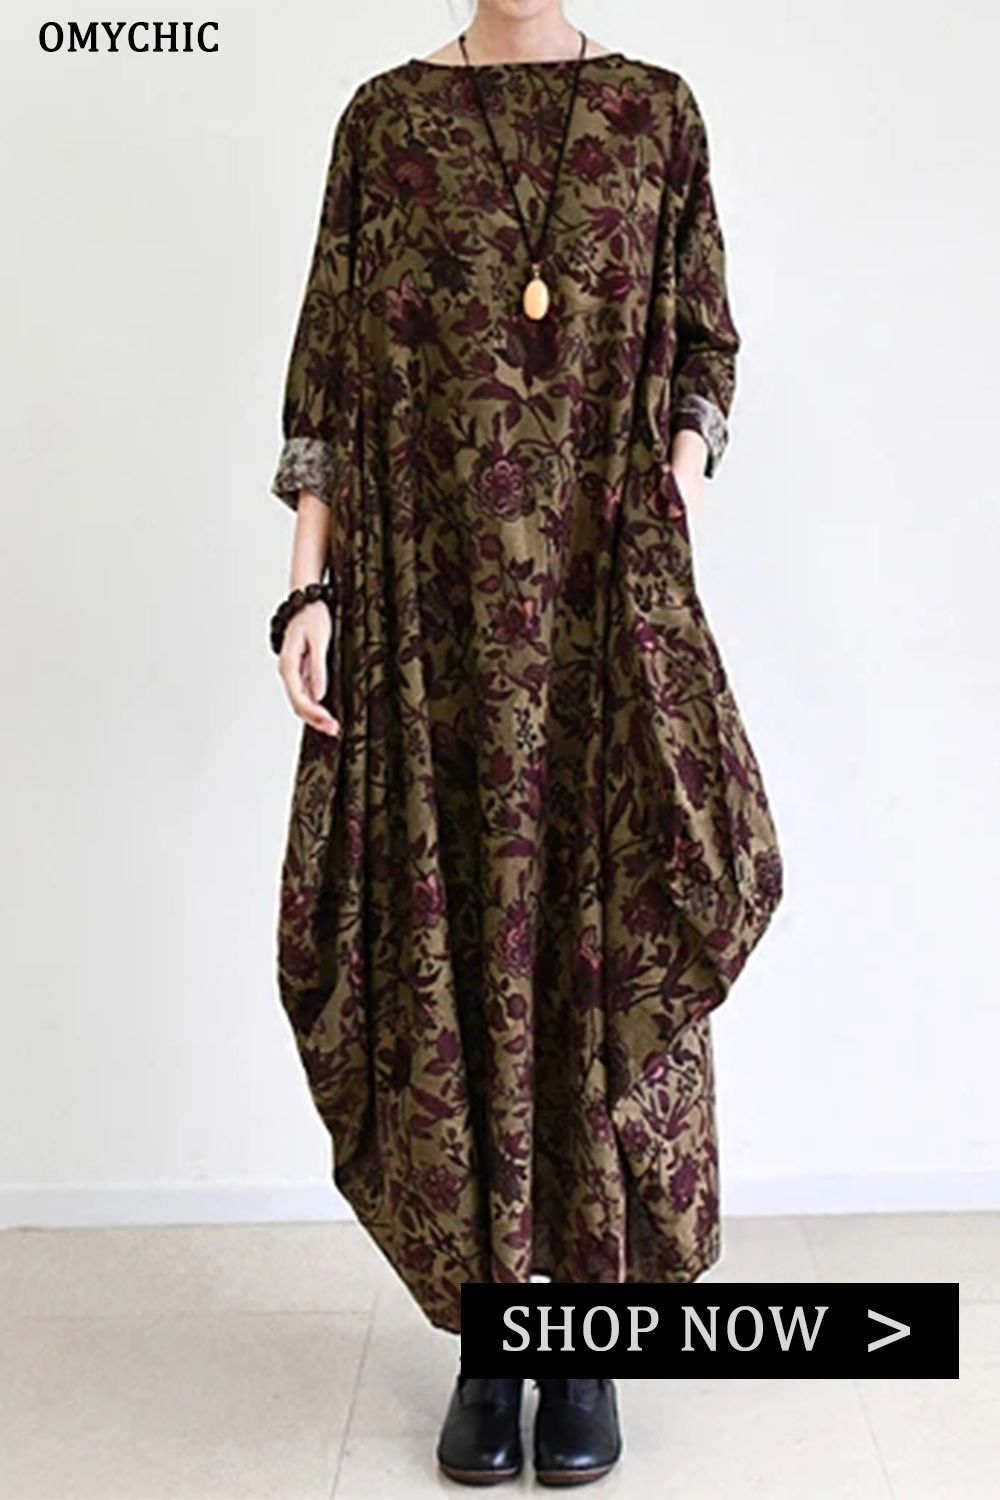 Fall Brown Baggy Long Sleeve Linen Dresses Long Cotton Maxi Dress Oversized Cotton Clothing In 2021 Maxi Dress Cotton Maxi Dress Long Sleeve Cotton Dress [ 1500 x 1000 Pixel ]